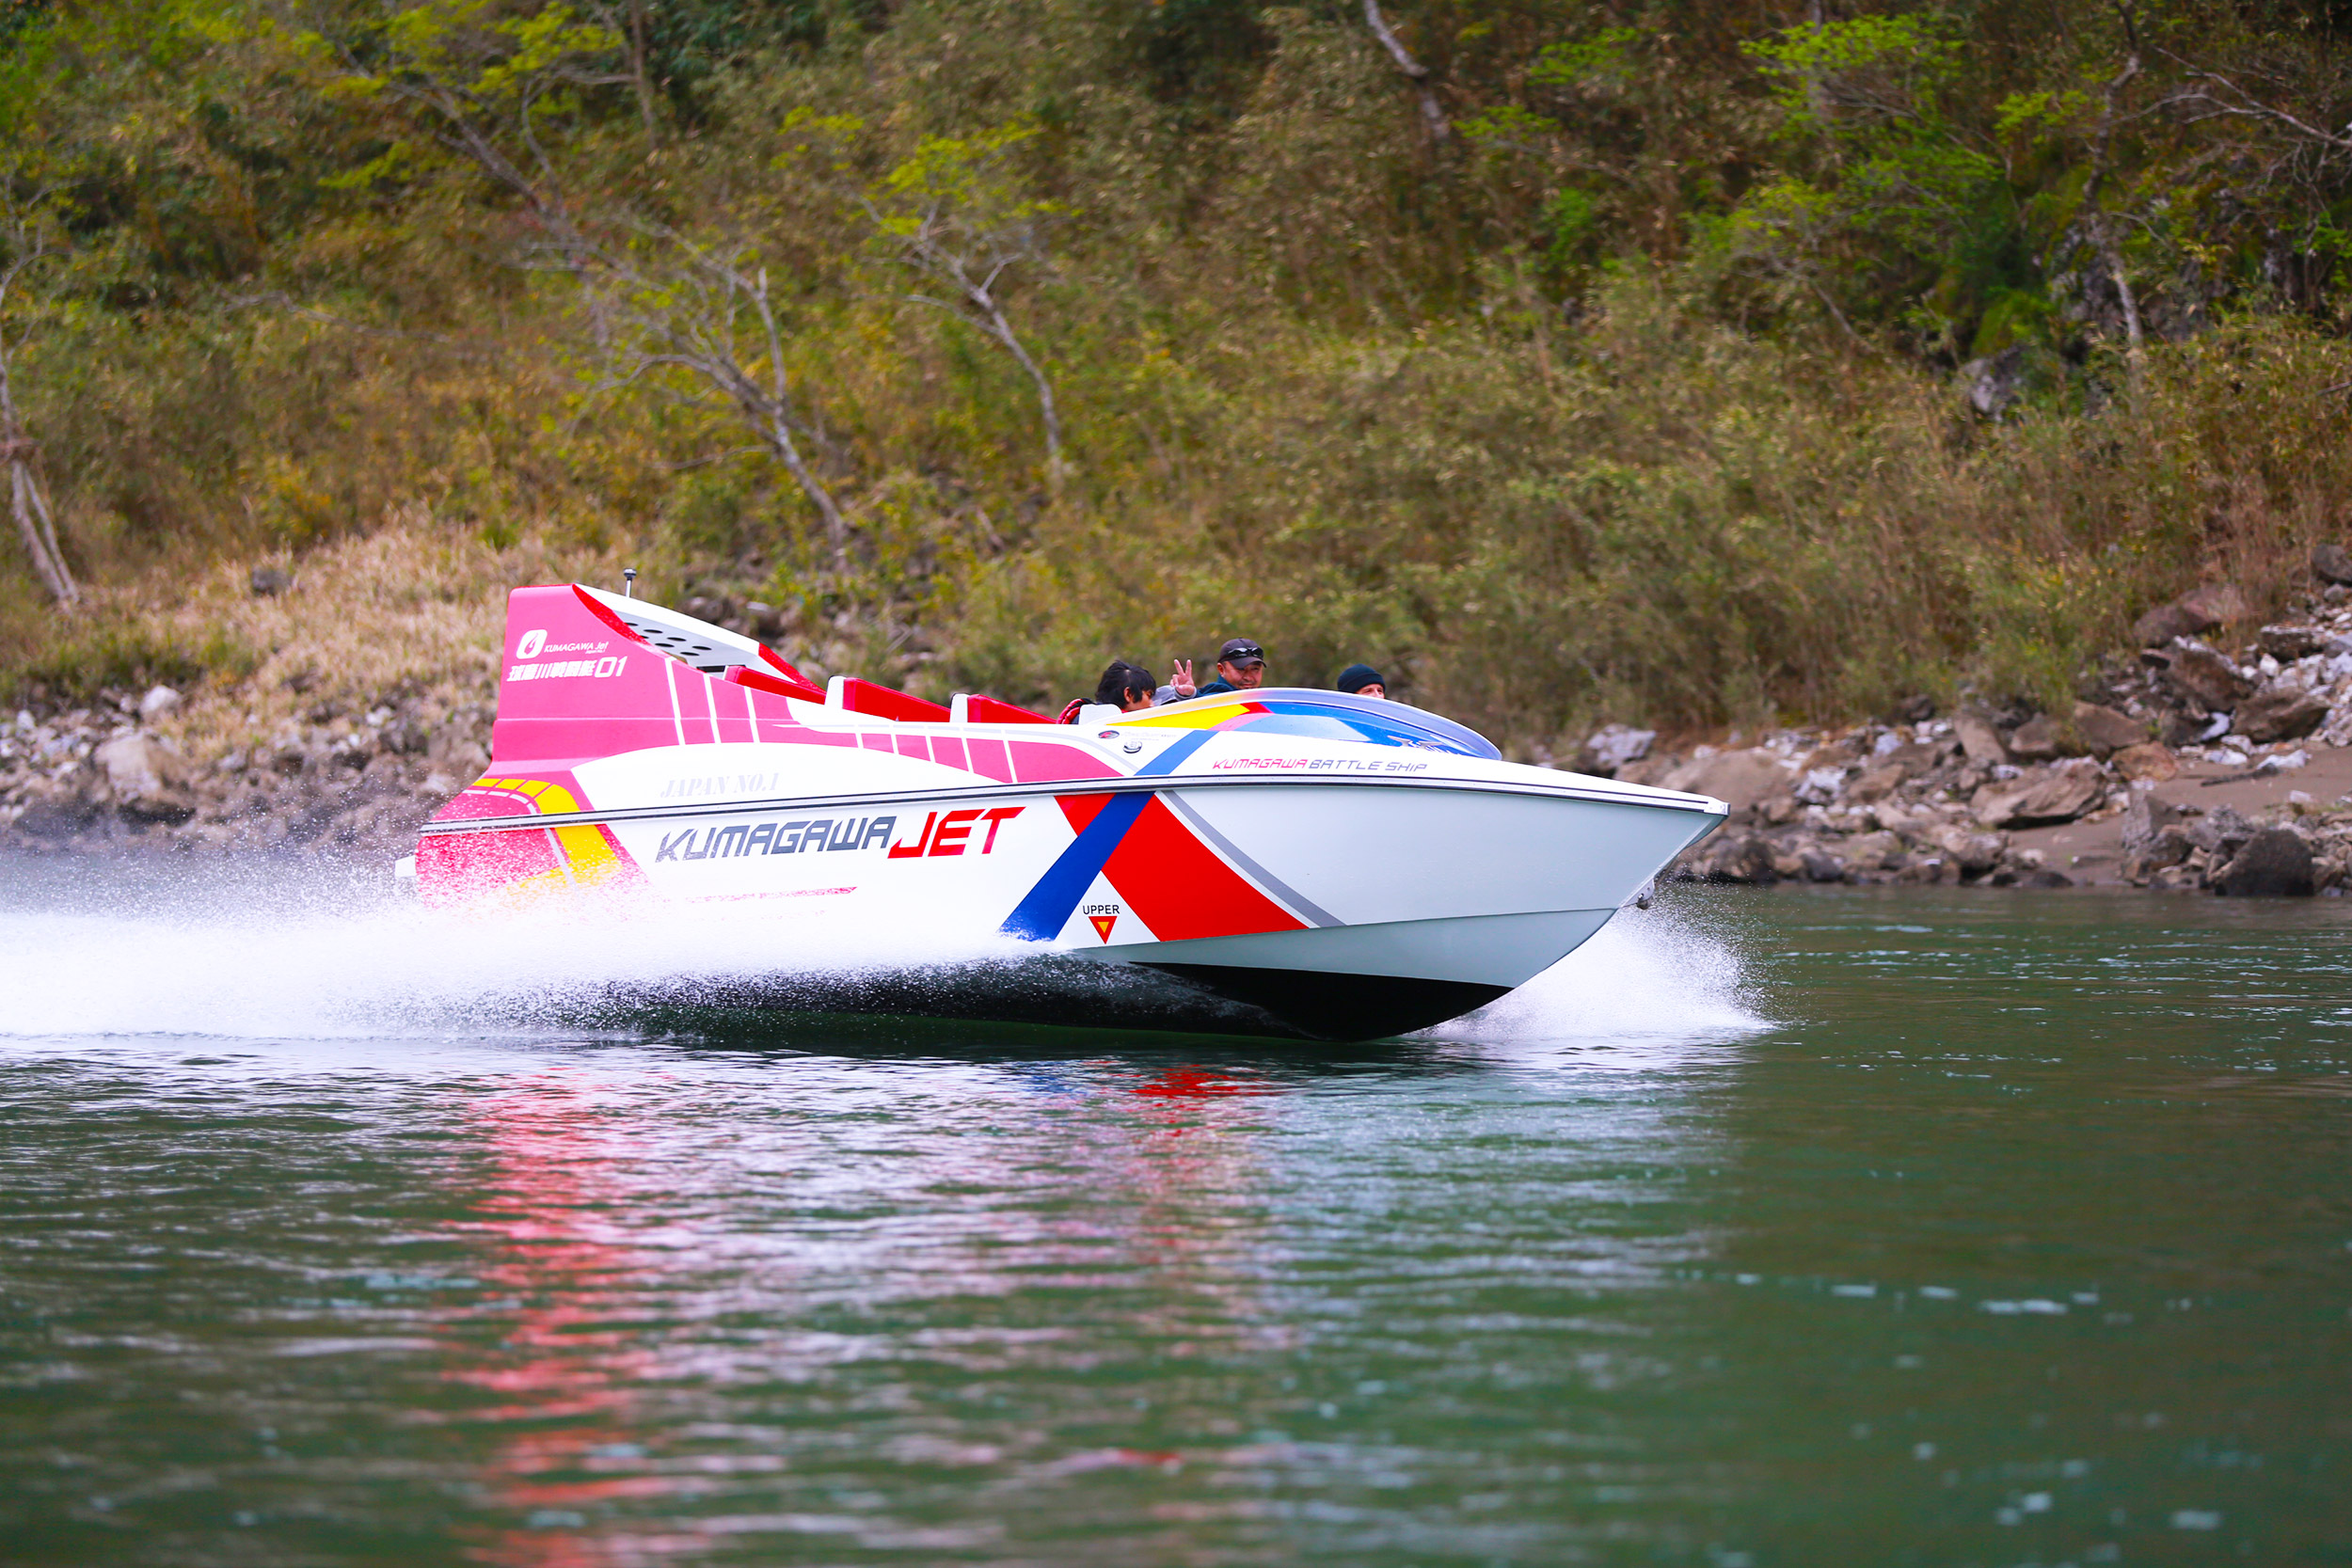 About JET BOAT < ジェットボートとは >